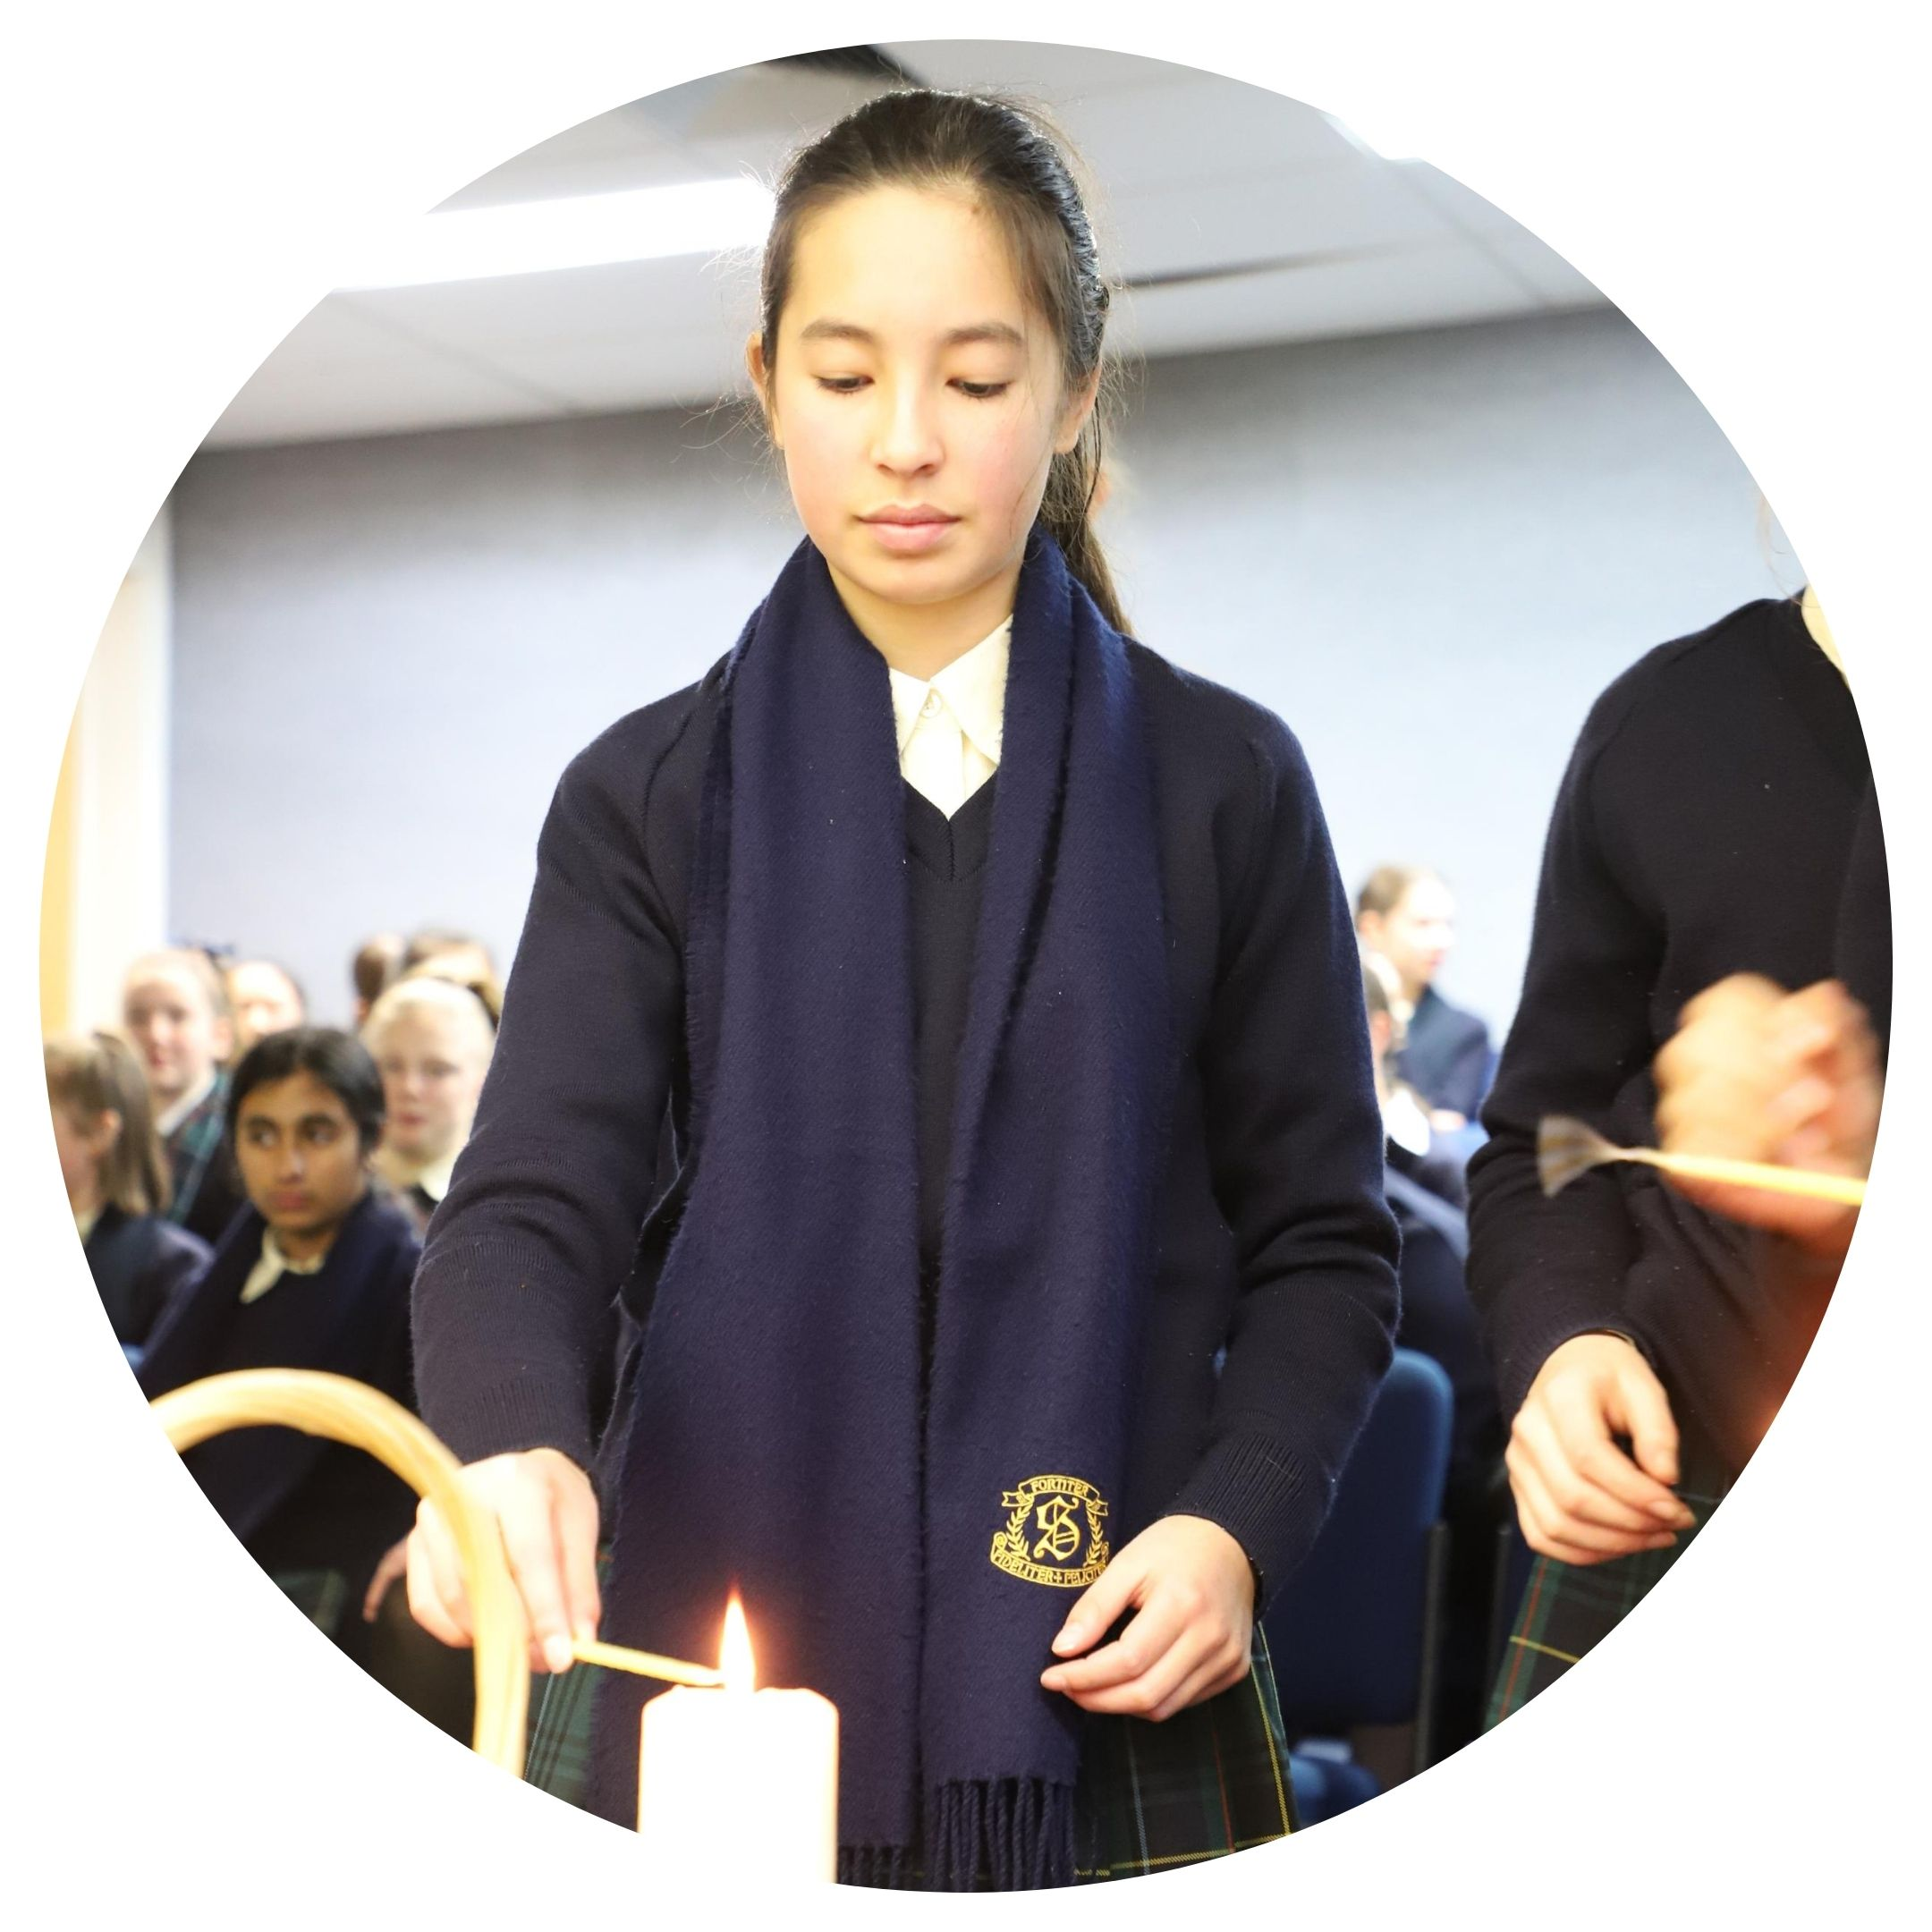 student lighting candle